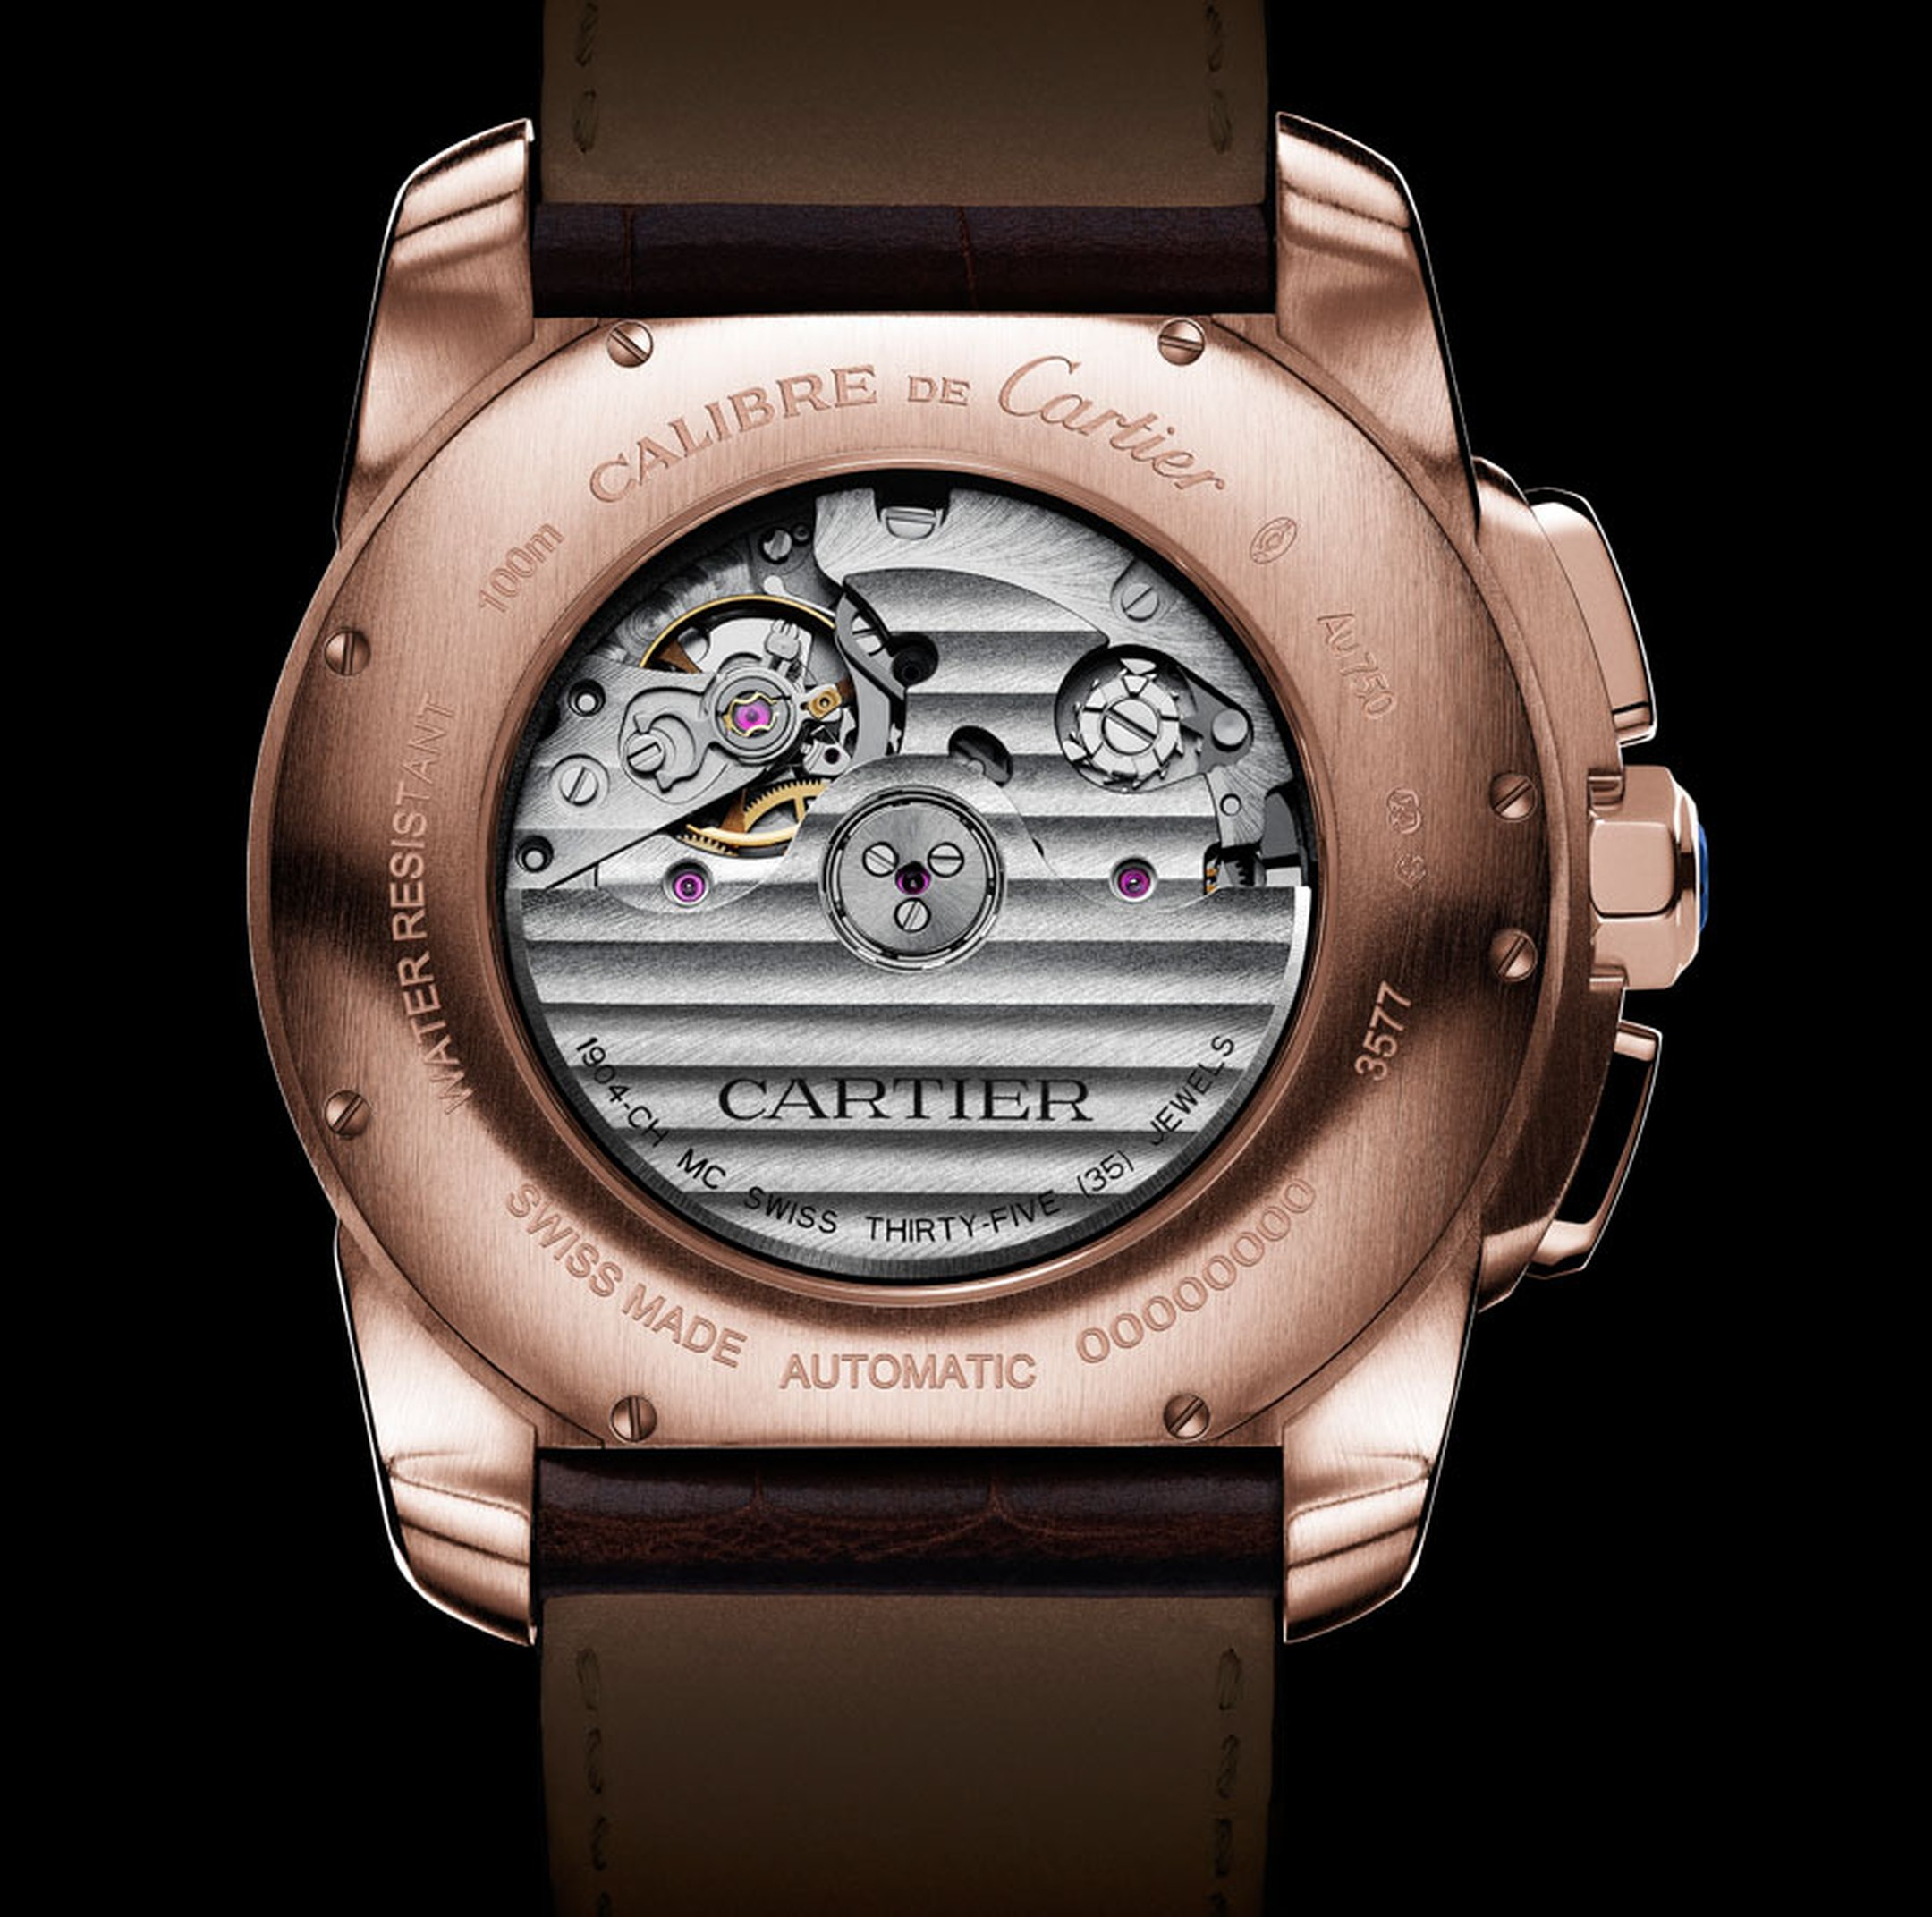 Calibre_de_Cartier_Chronographe_02